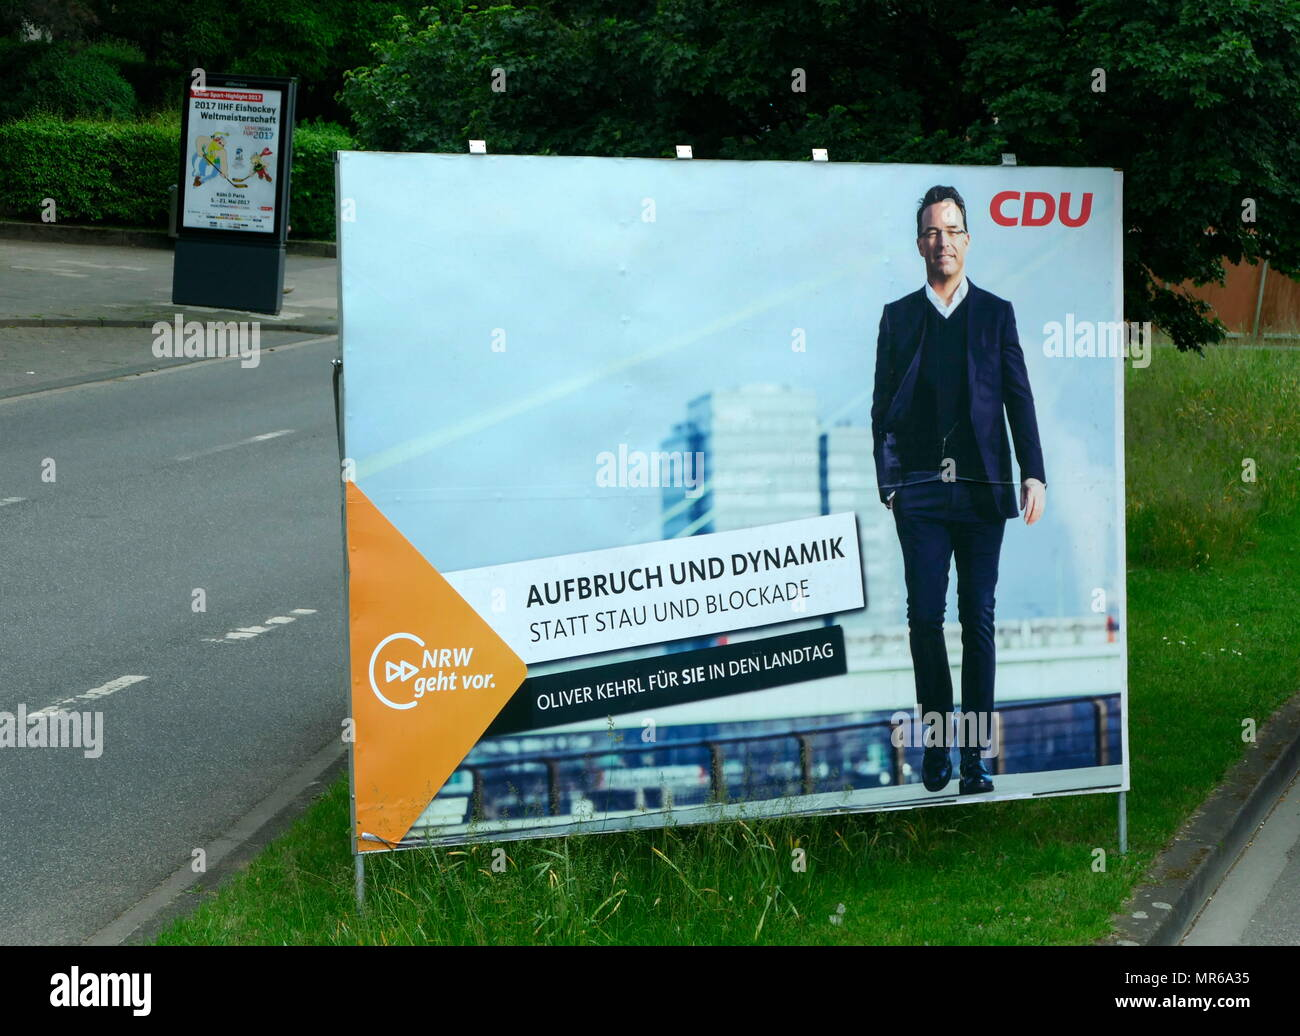 poster for the CDU Party candidate, Oliver Kehrl, during the North Rhine-Westphalia state election, Cologne. May 2017 - Stock Image